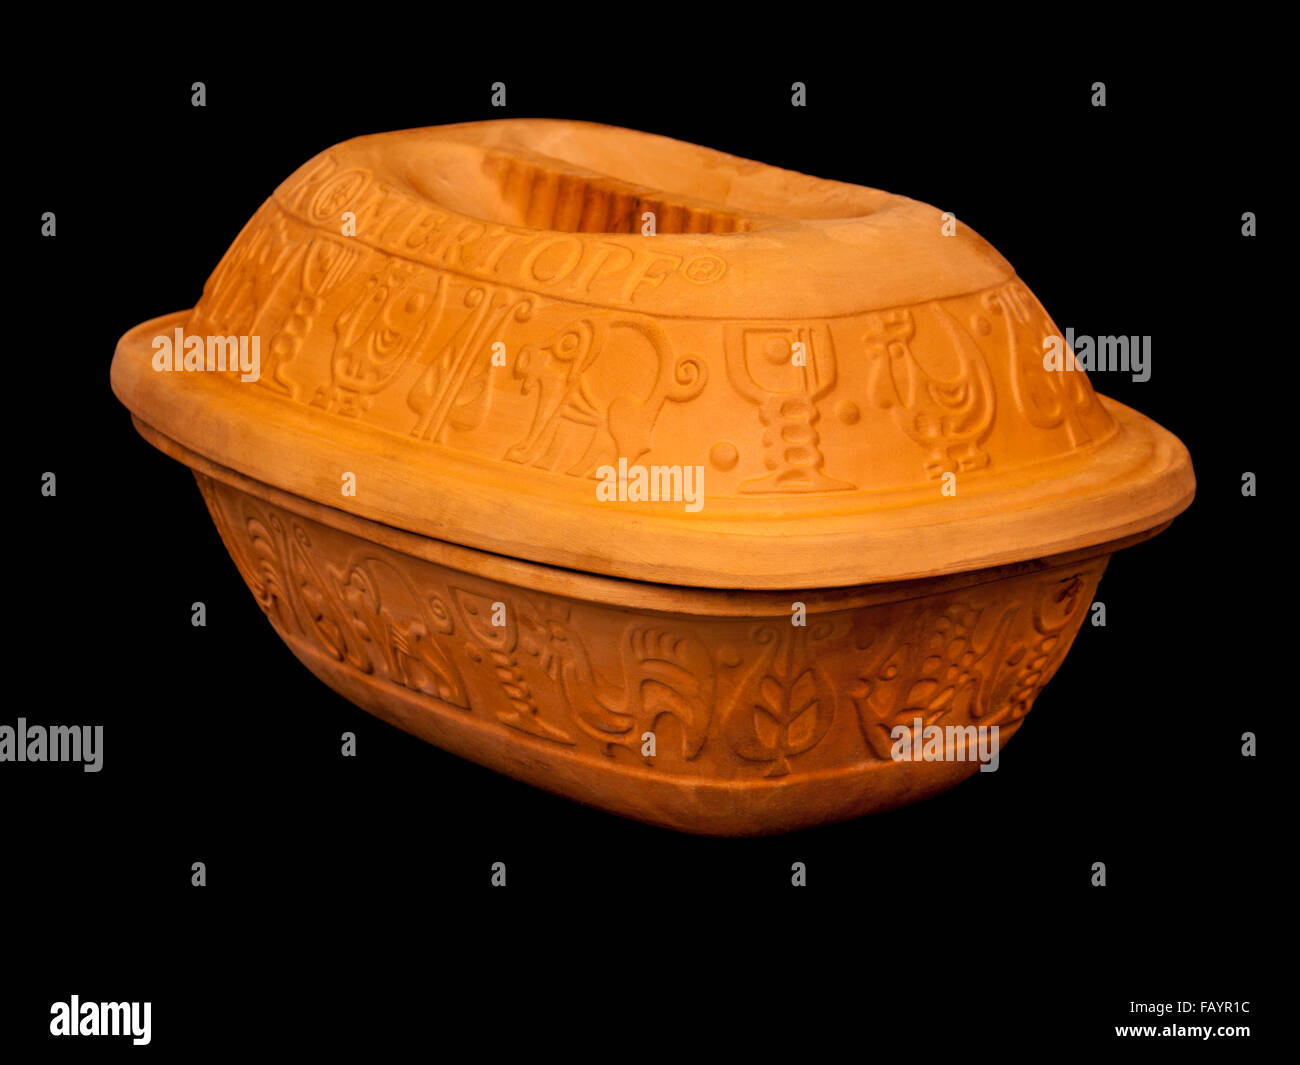 German 'Romertopf' clay cooking pot / casserole dish by Bay Keramik - Stock Image